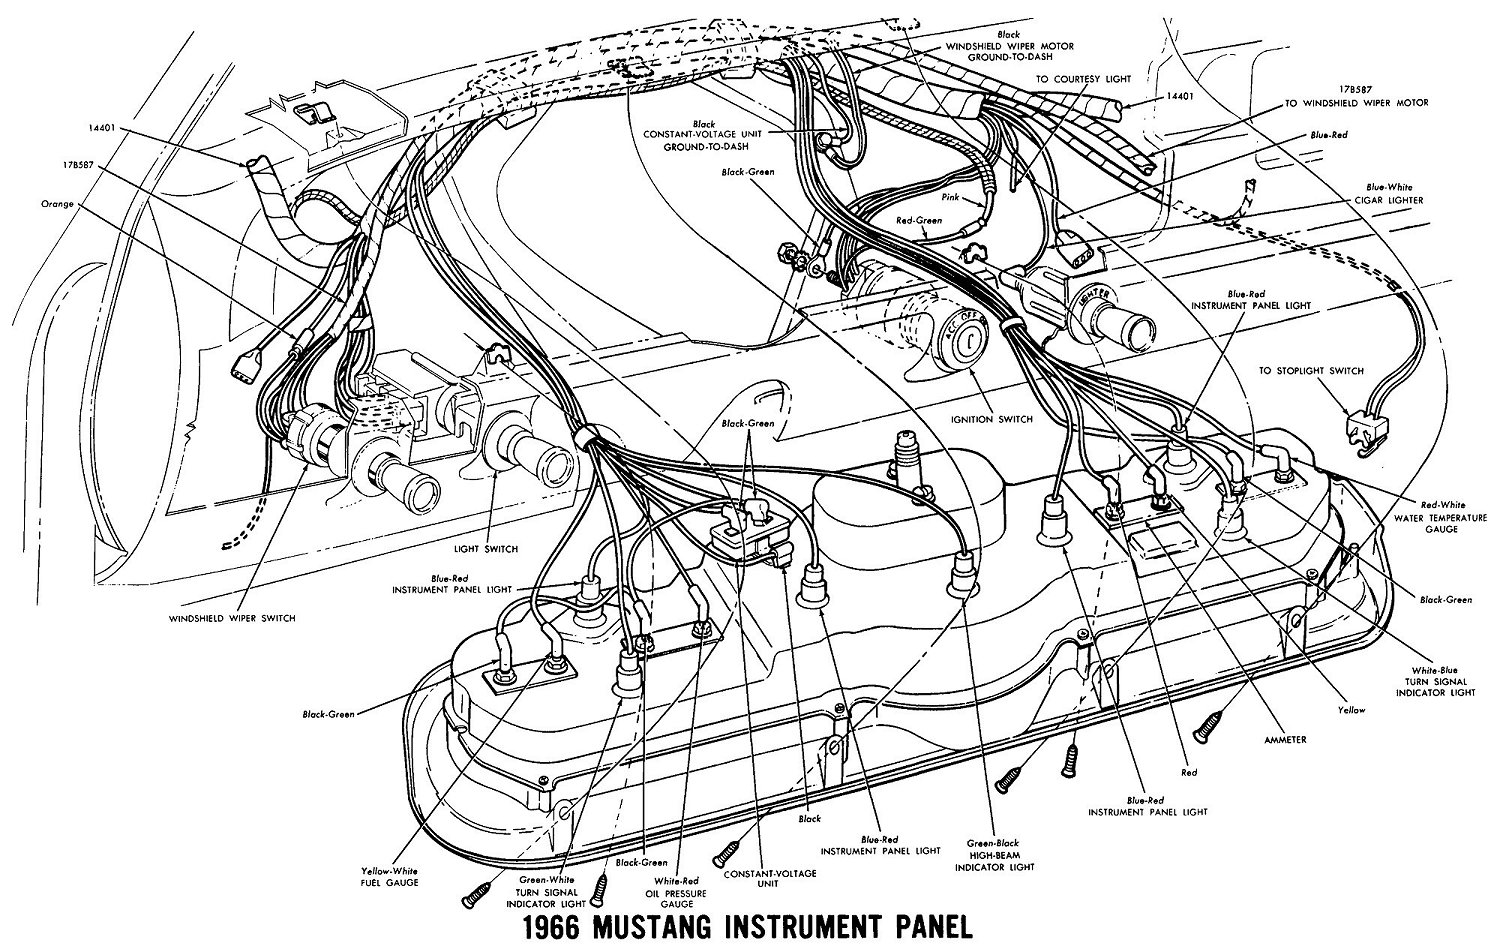 1966 Mustang Wiring Diagrams on 1959 chevy impala wiring diagram